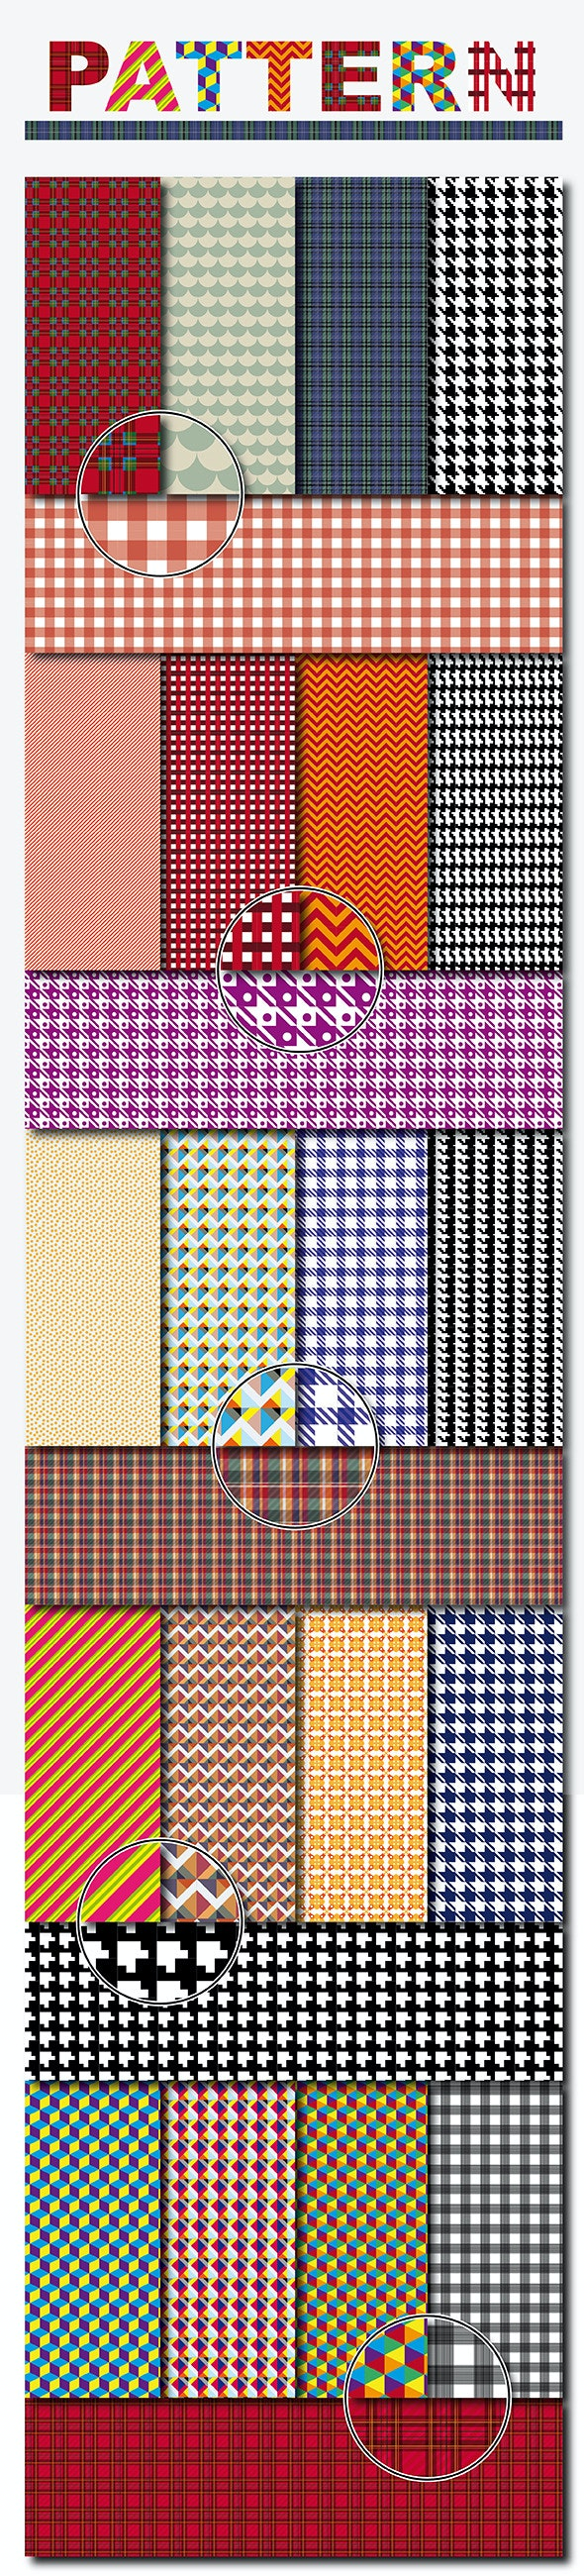 Textile and Decorative Pattern Background - Miscellaneous Textures / Fills / Patterns